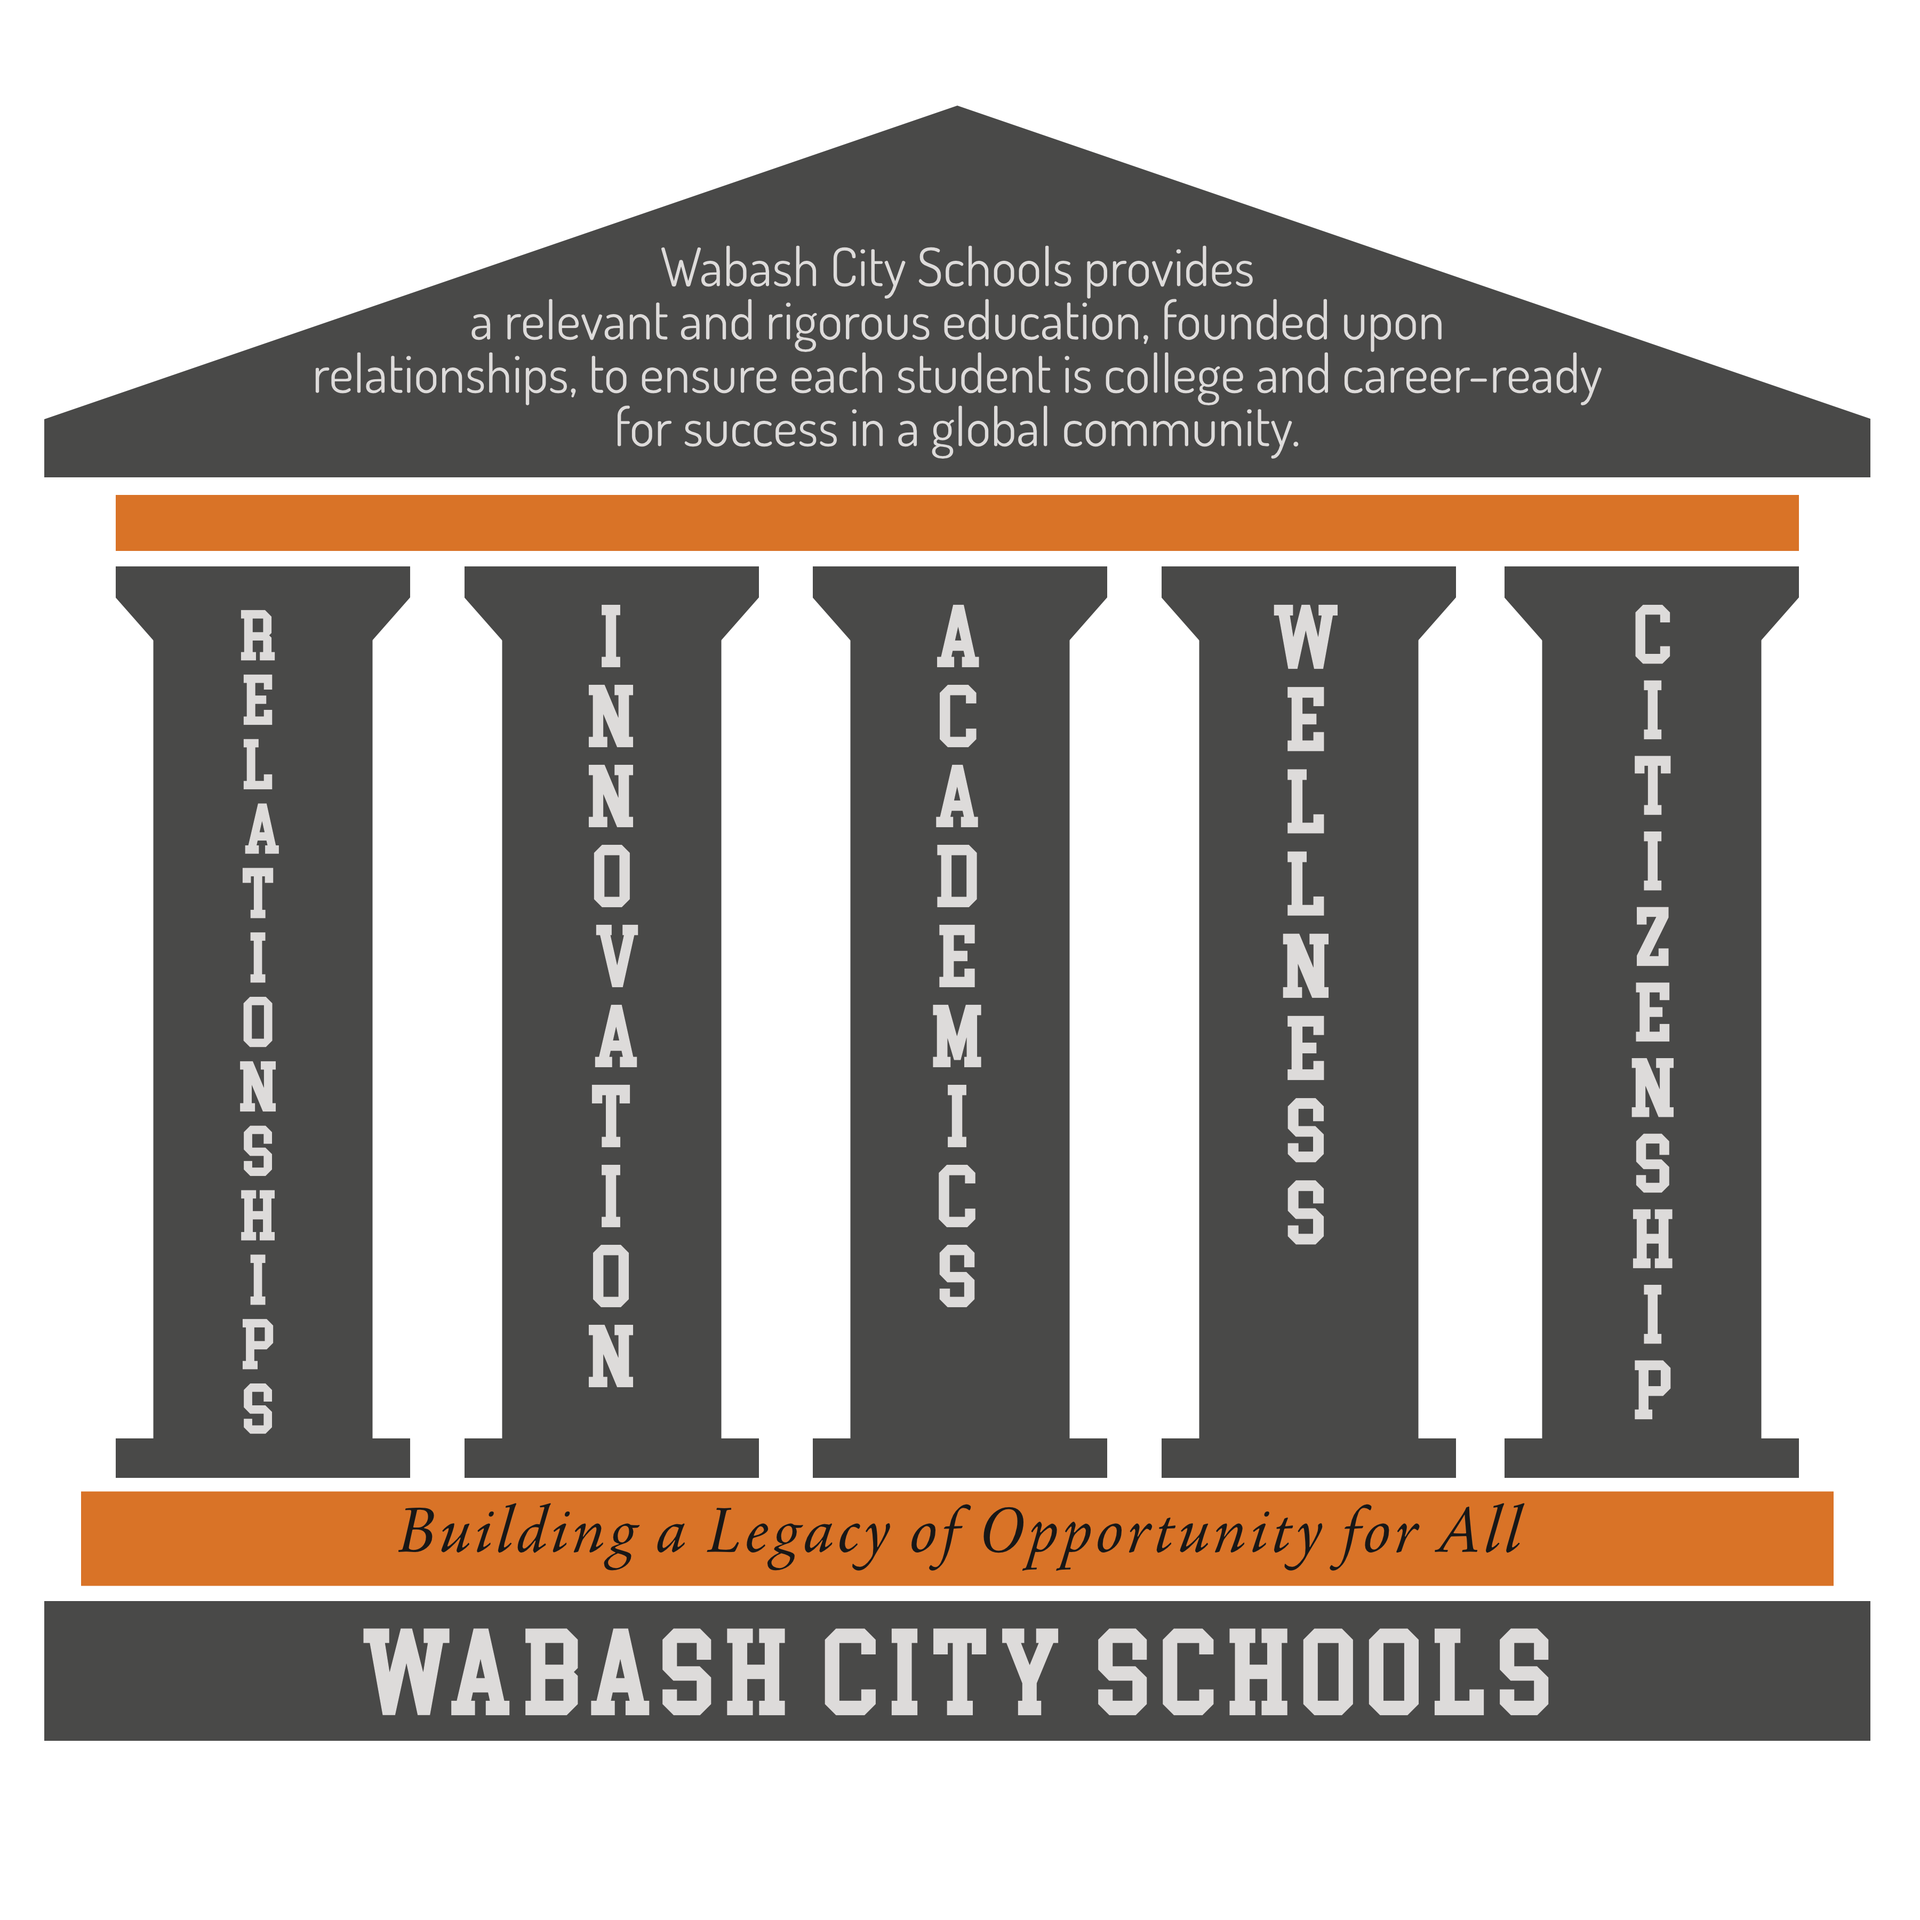 Wabash City Schools Pillars graphic